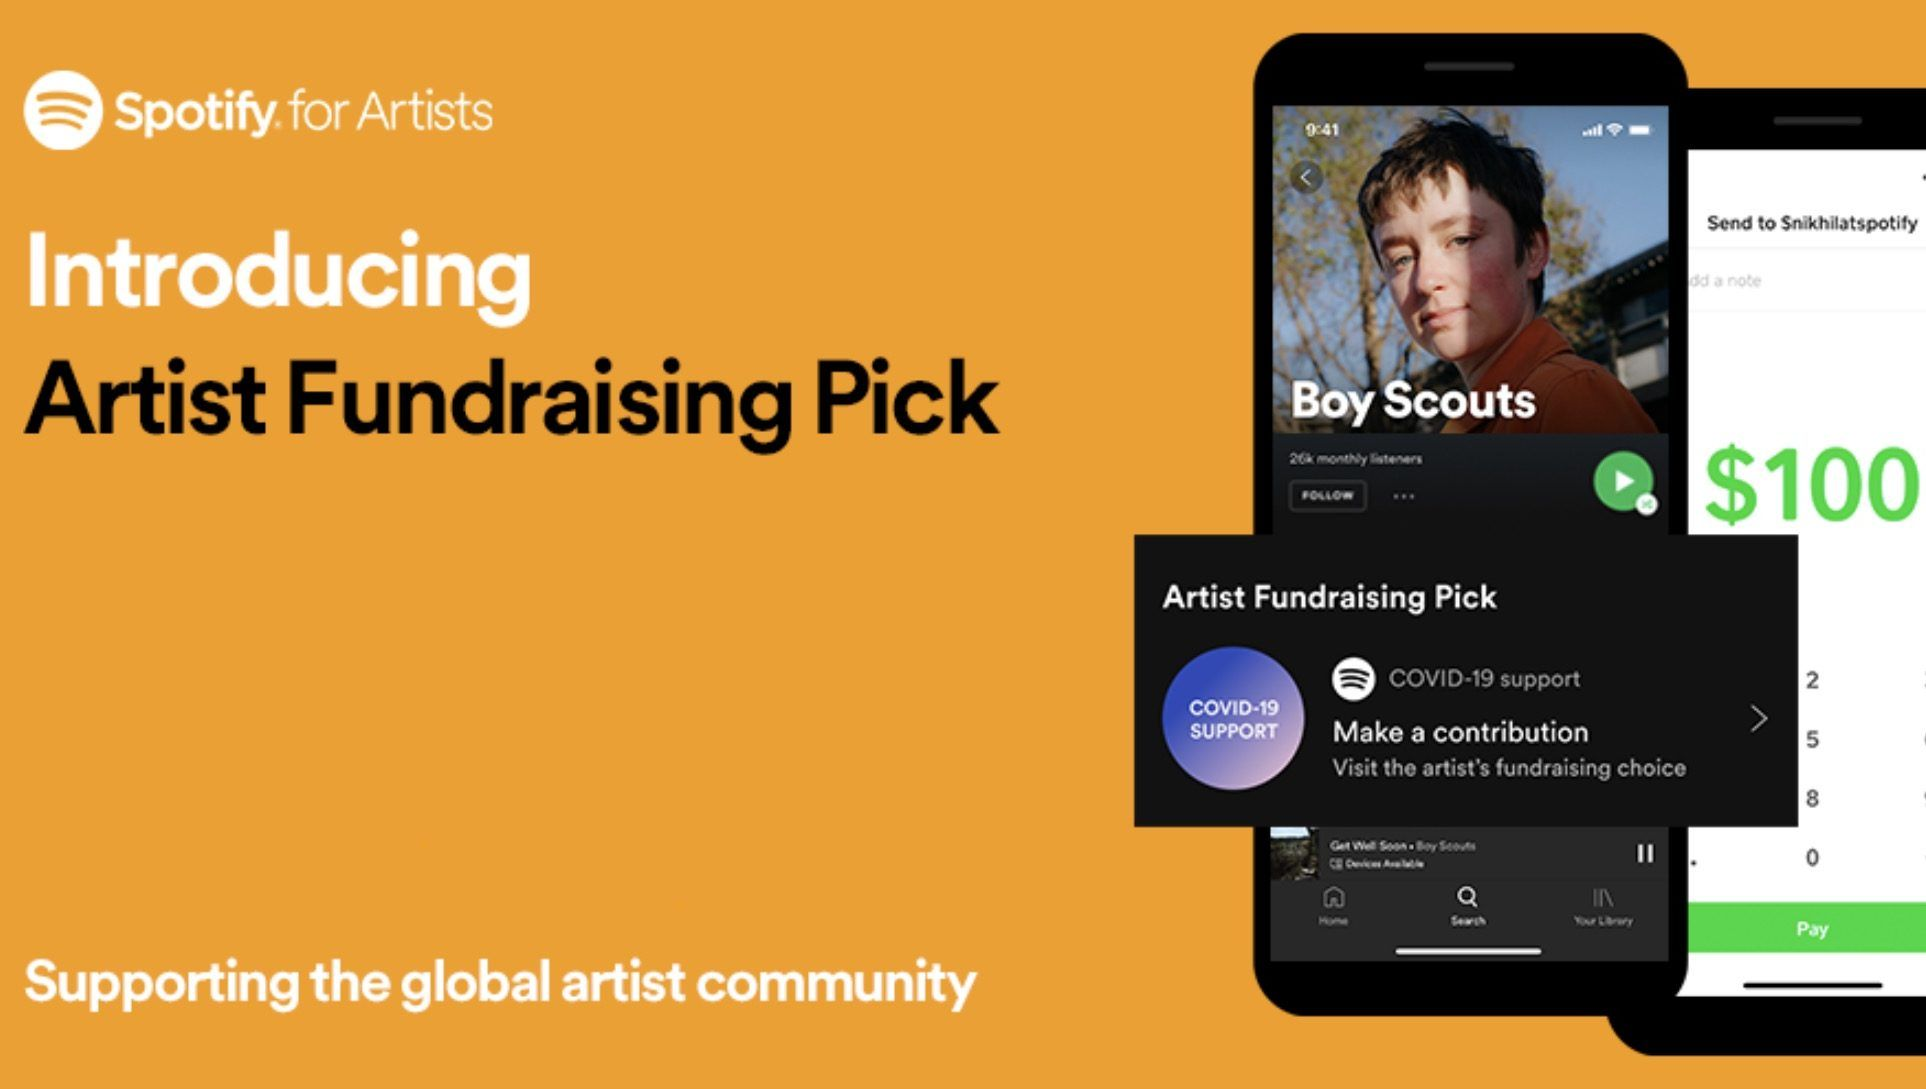 Spotify now enables fans to pay artists money direct via